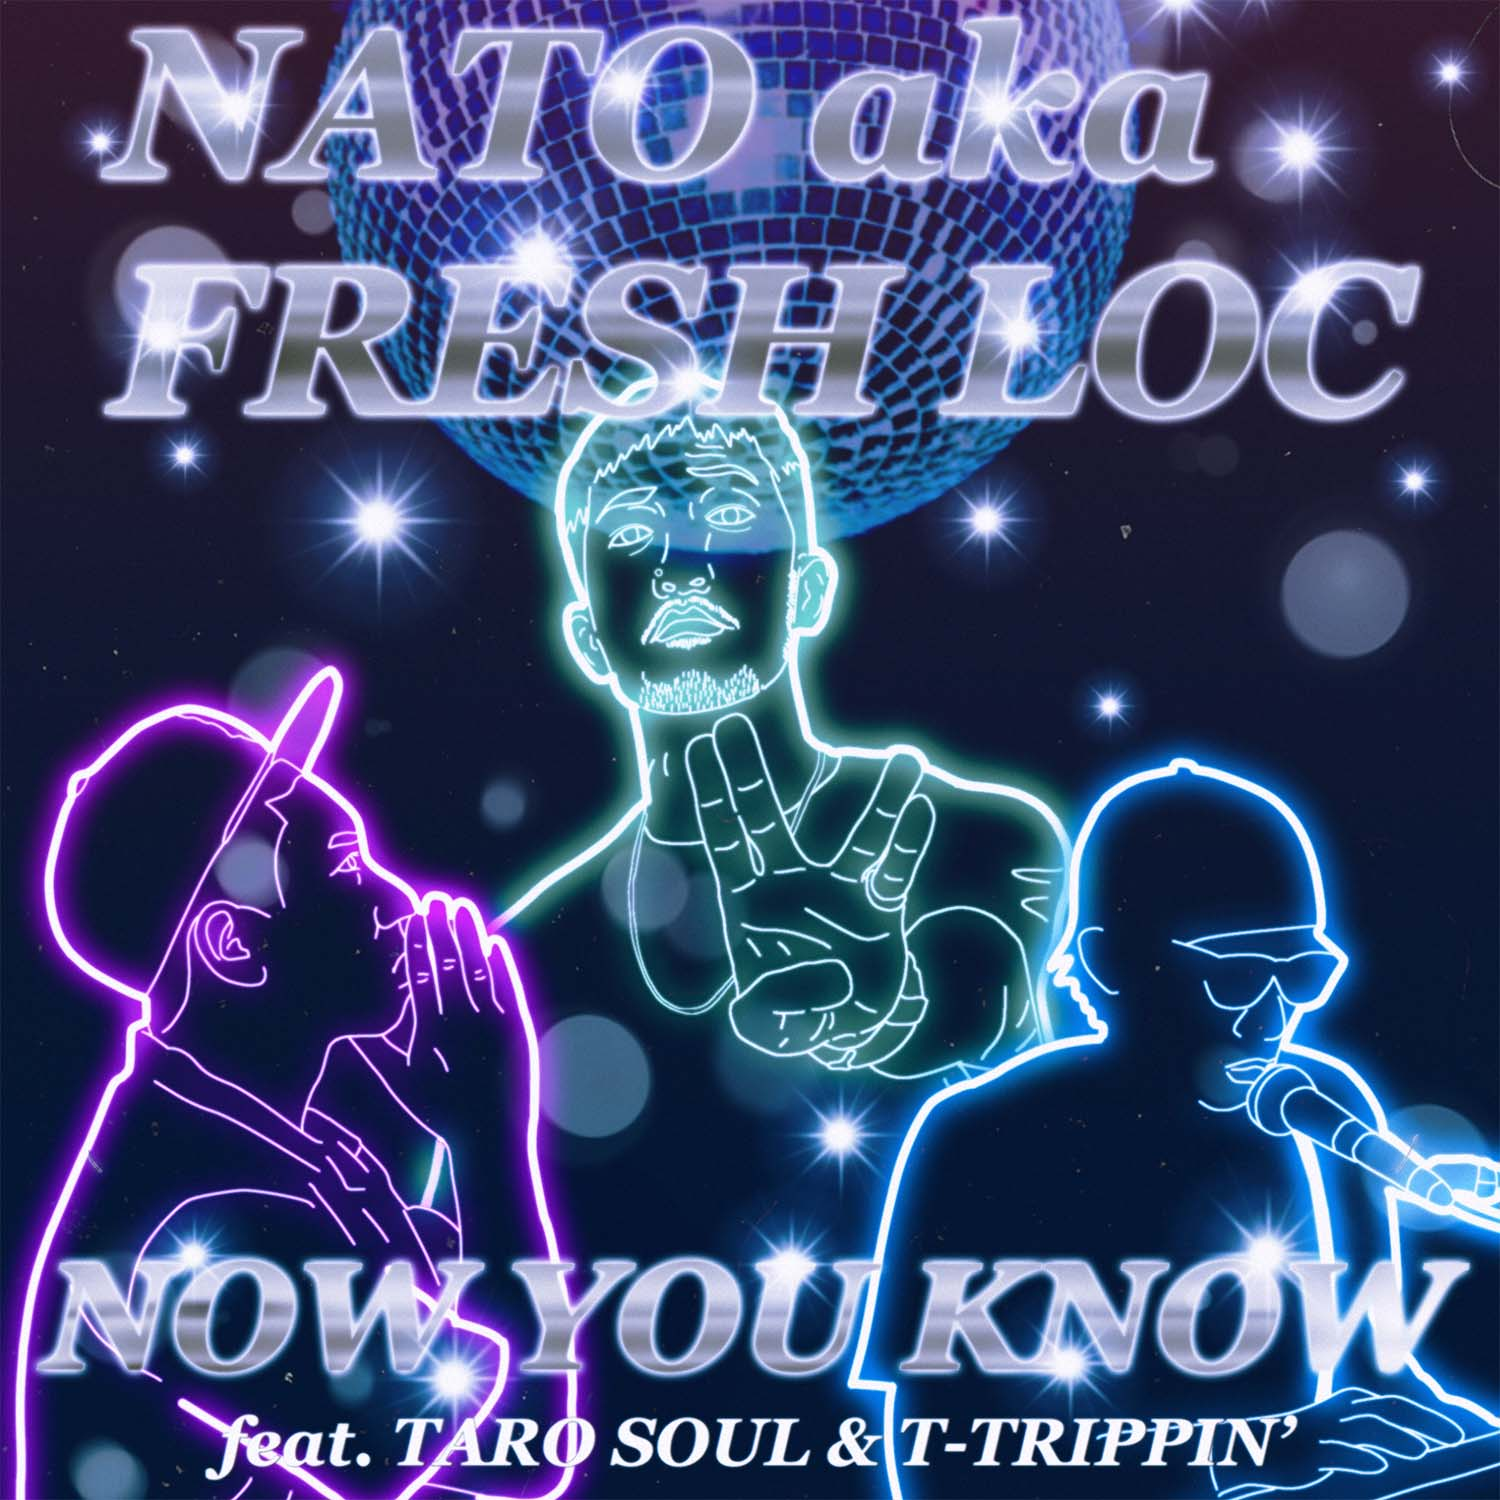 NATO a.k.a. Fresh Loc feat. TARO SOUL & T-TRIPPIN' (DAZZLE 4 LIFE)「Now You Know」